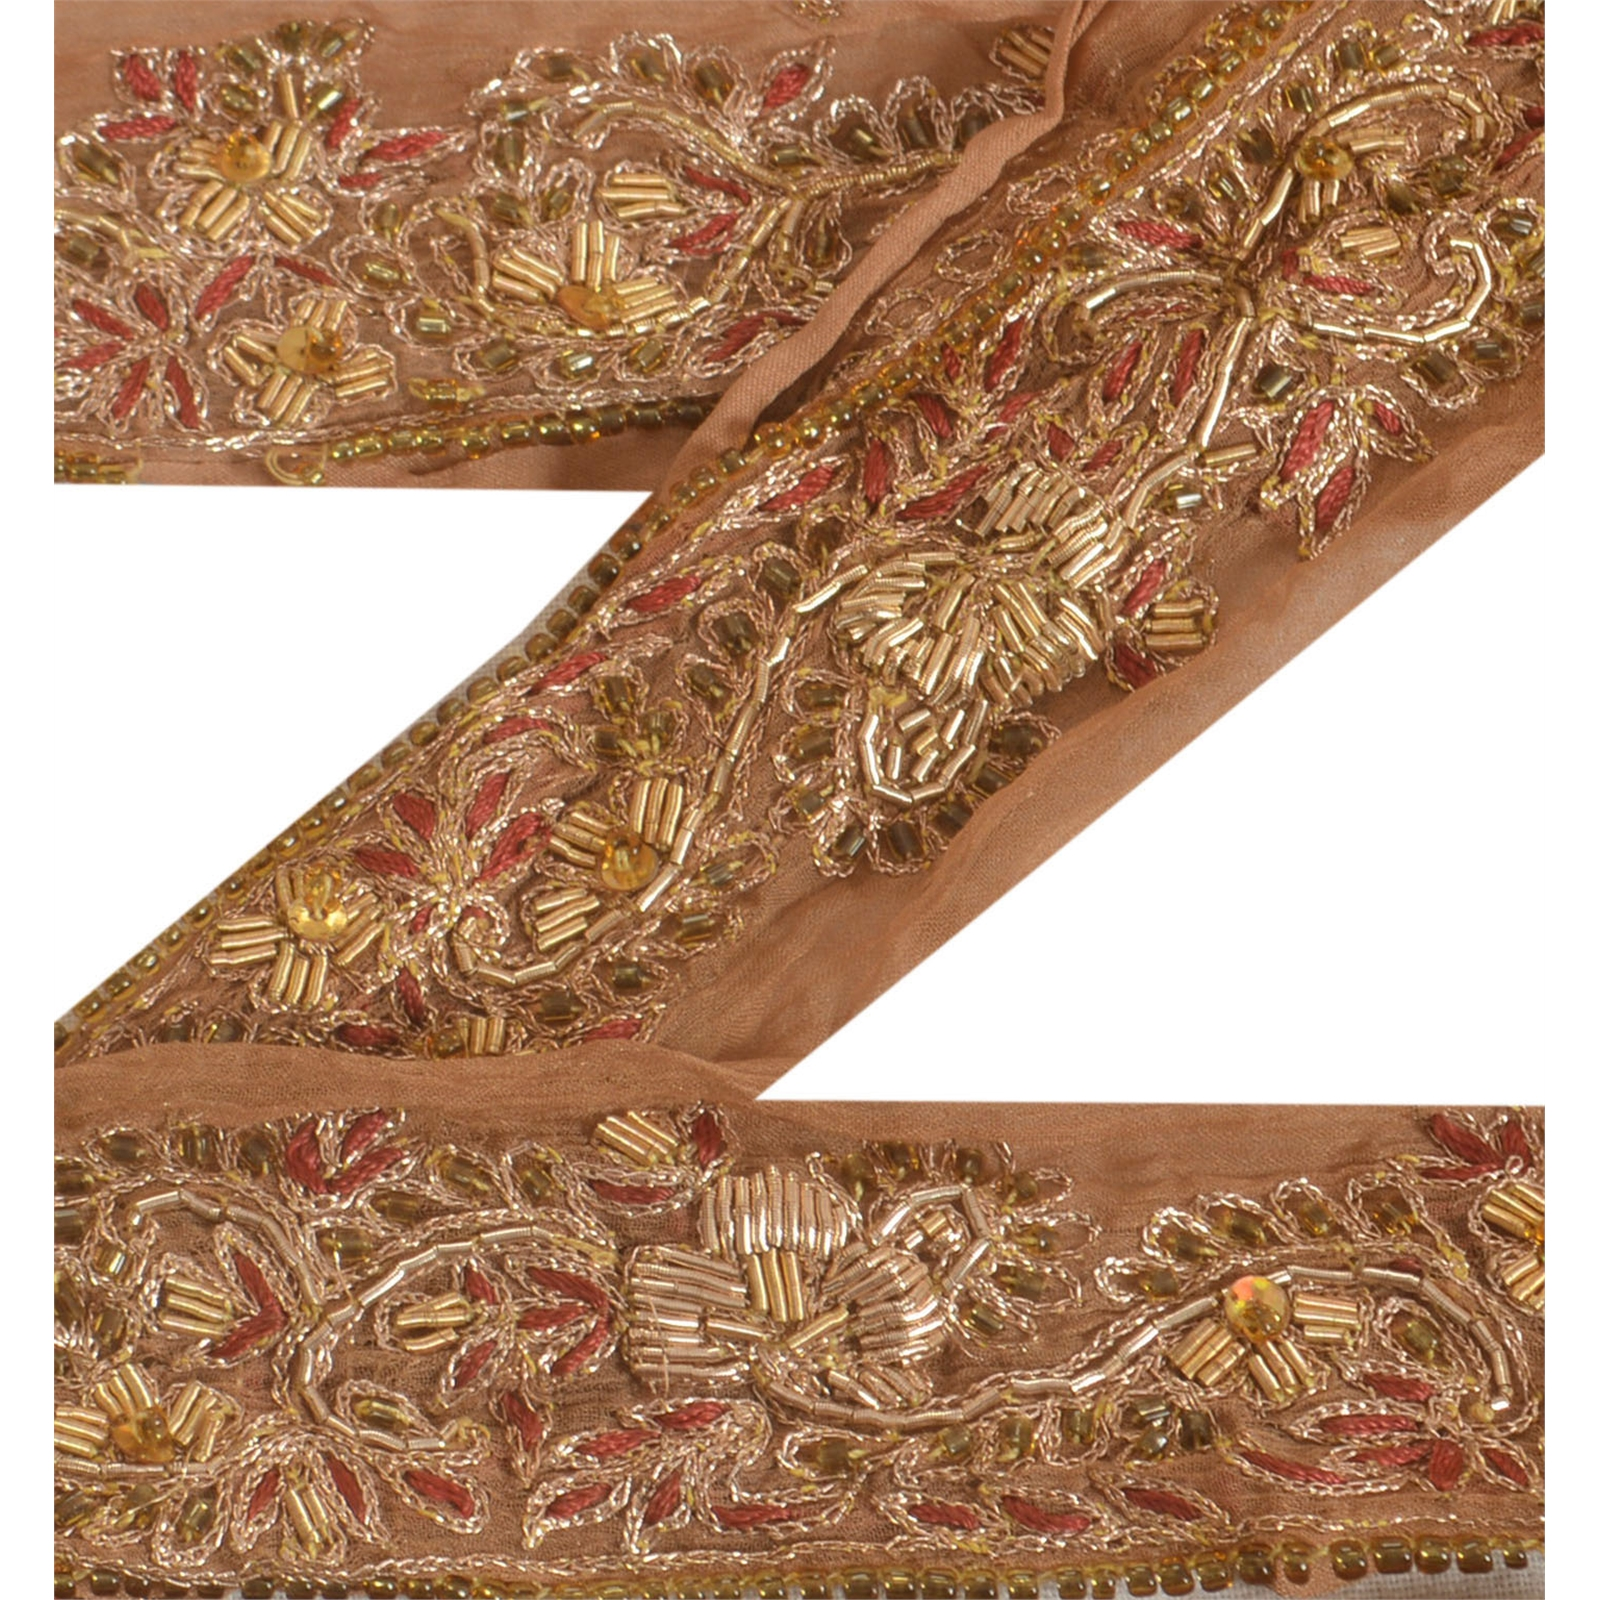 Linens & Textiles (pre-1930) Trims Sanskriti Vintage Sari Border Craft Brown Trim Hand Embroidered Sewing Lace